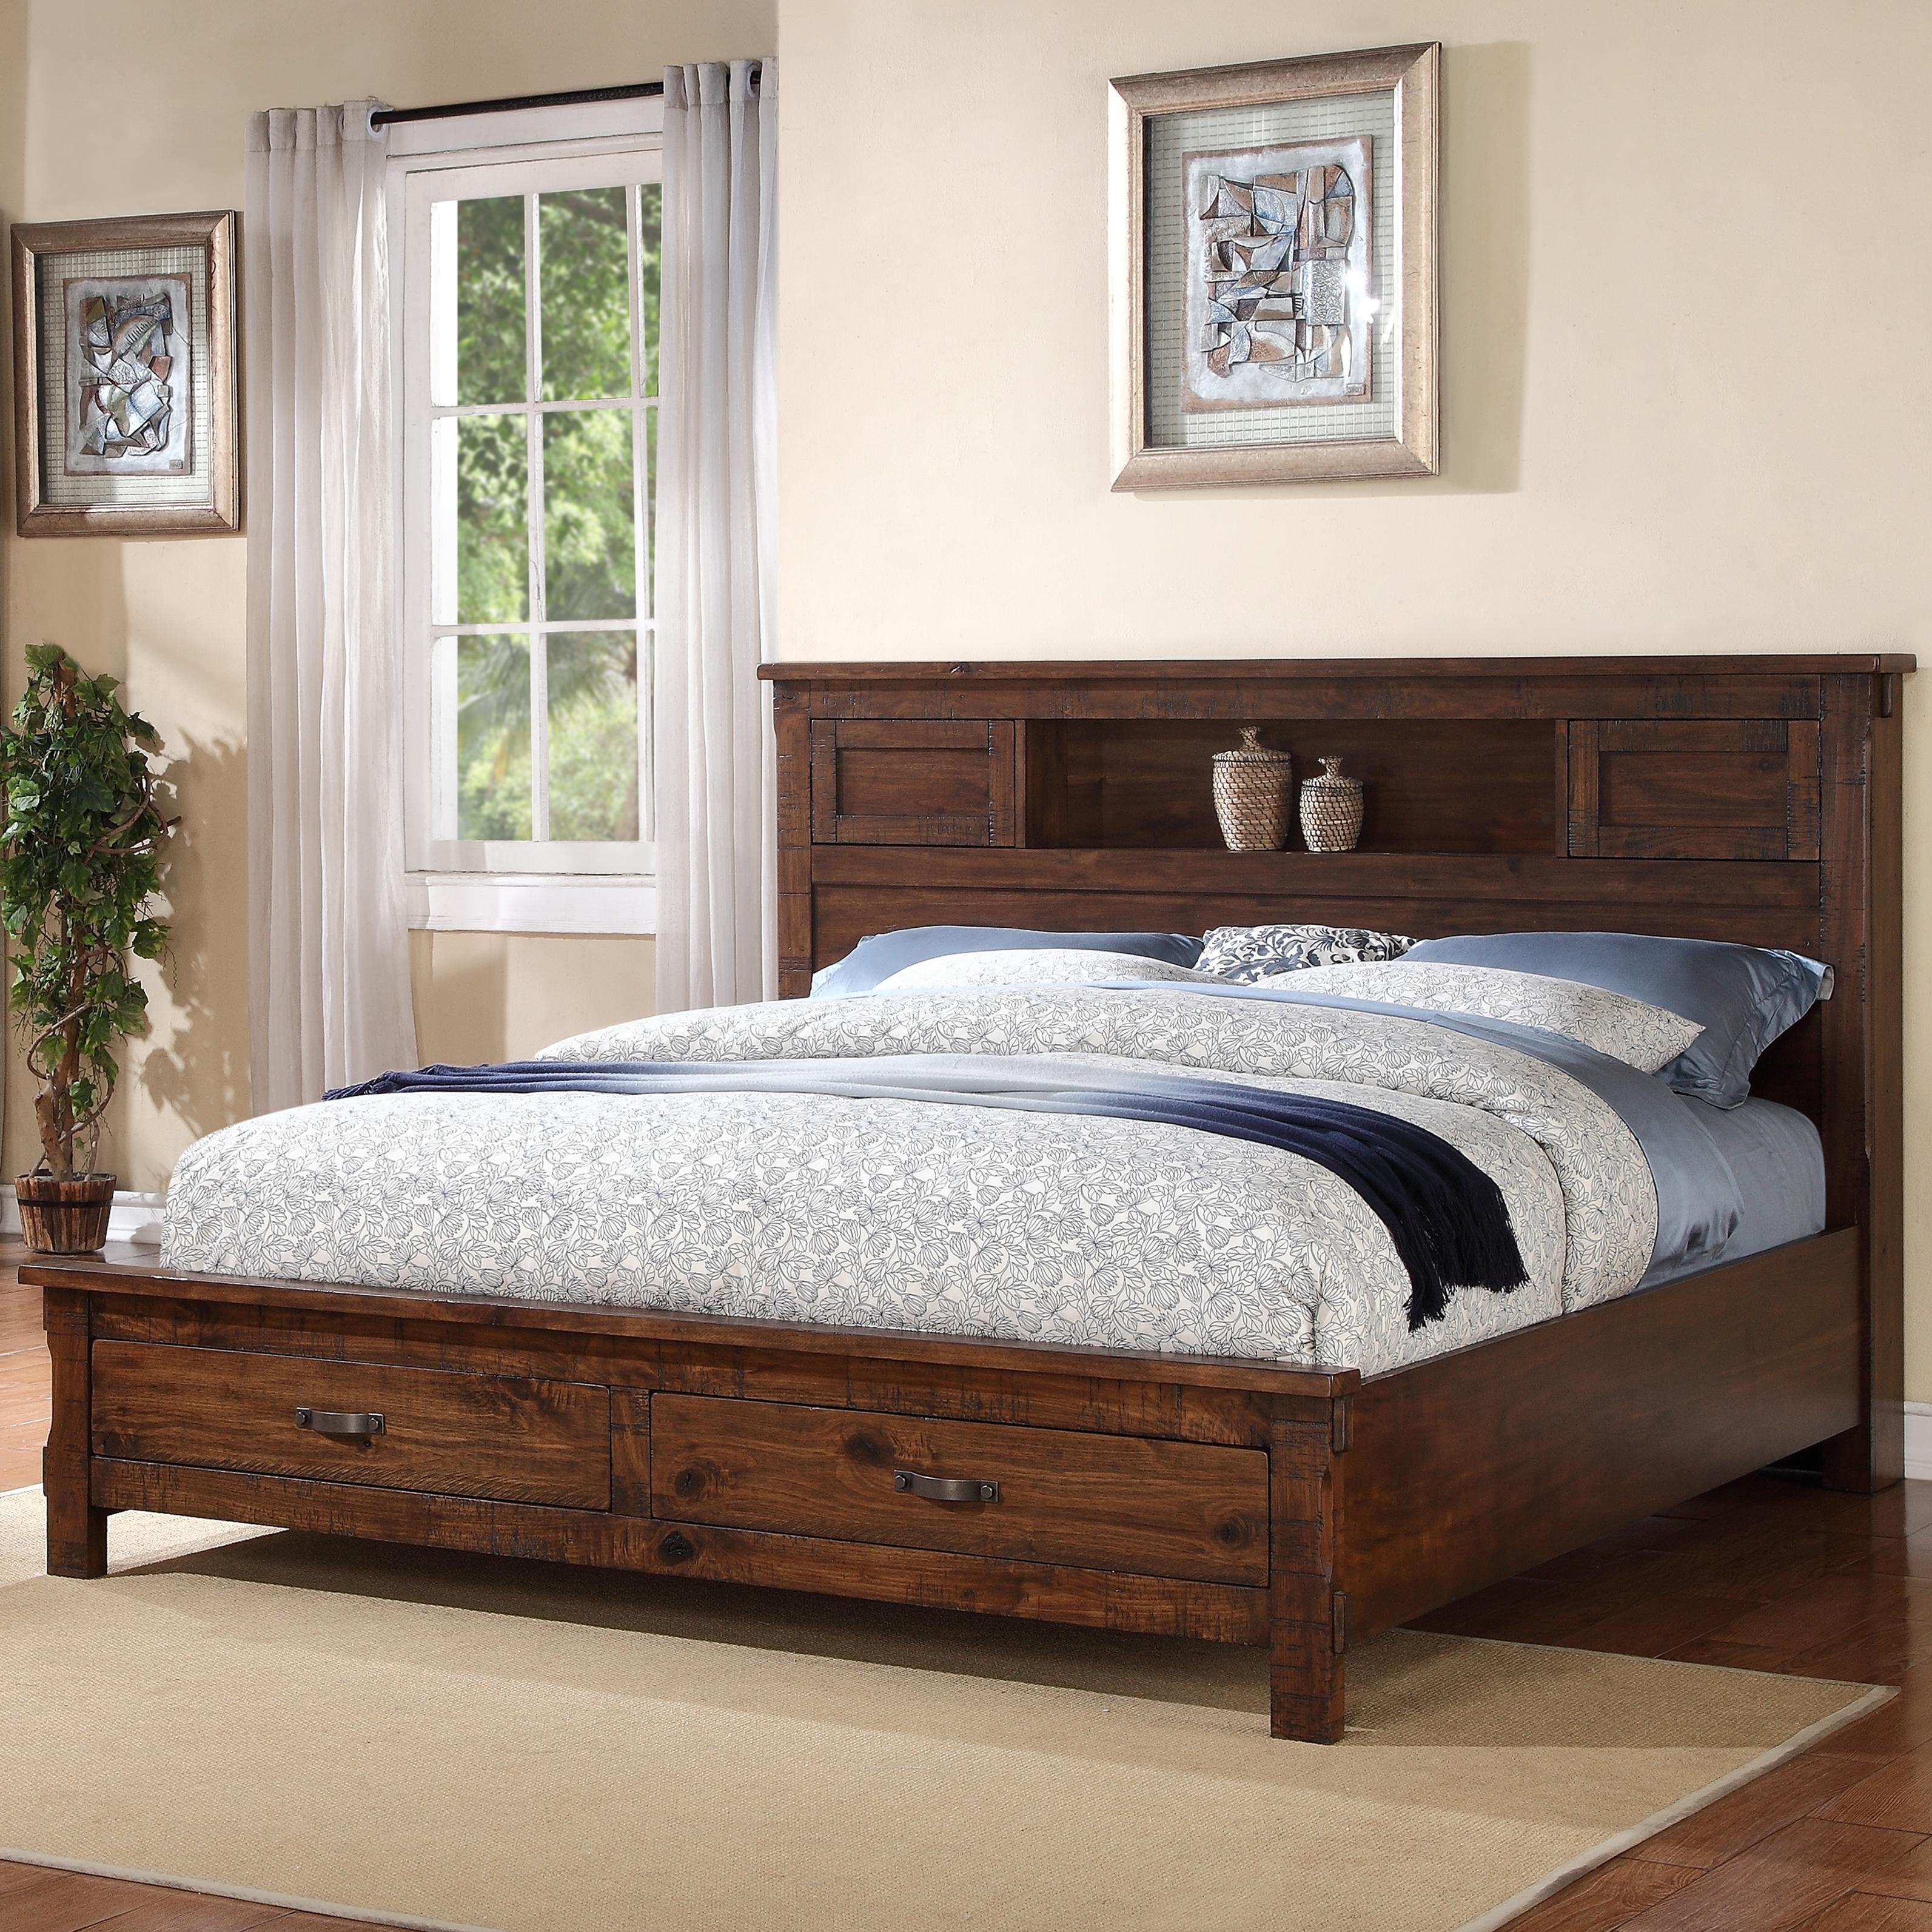 Legends Furniture Restoration Queen Storage Bed - Item Number: ZRST-7001+07+08